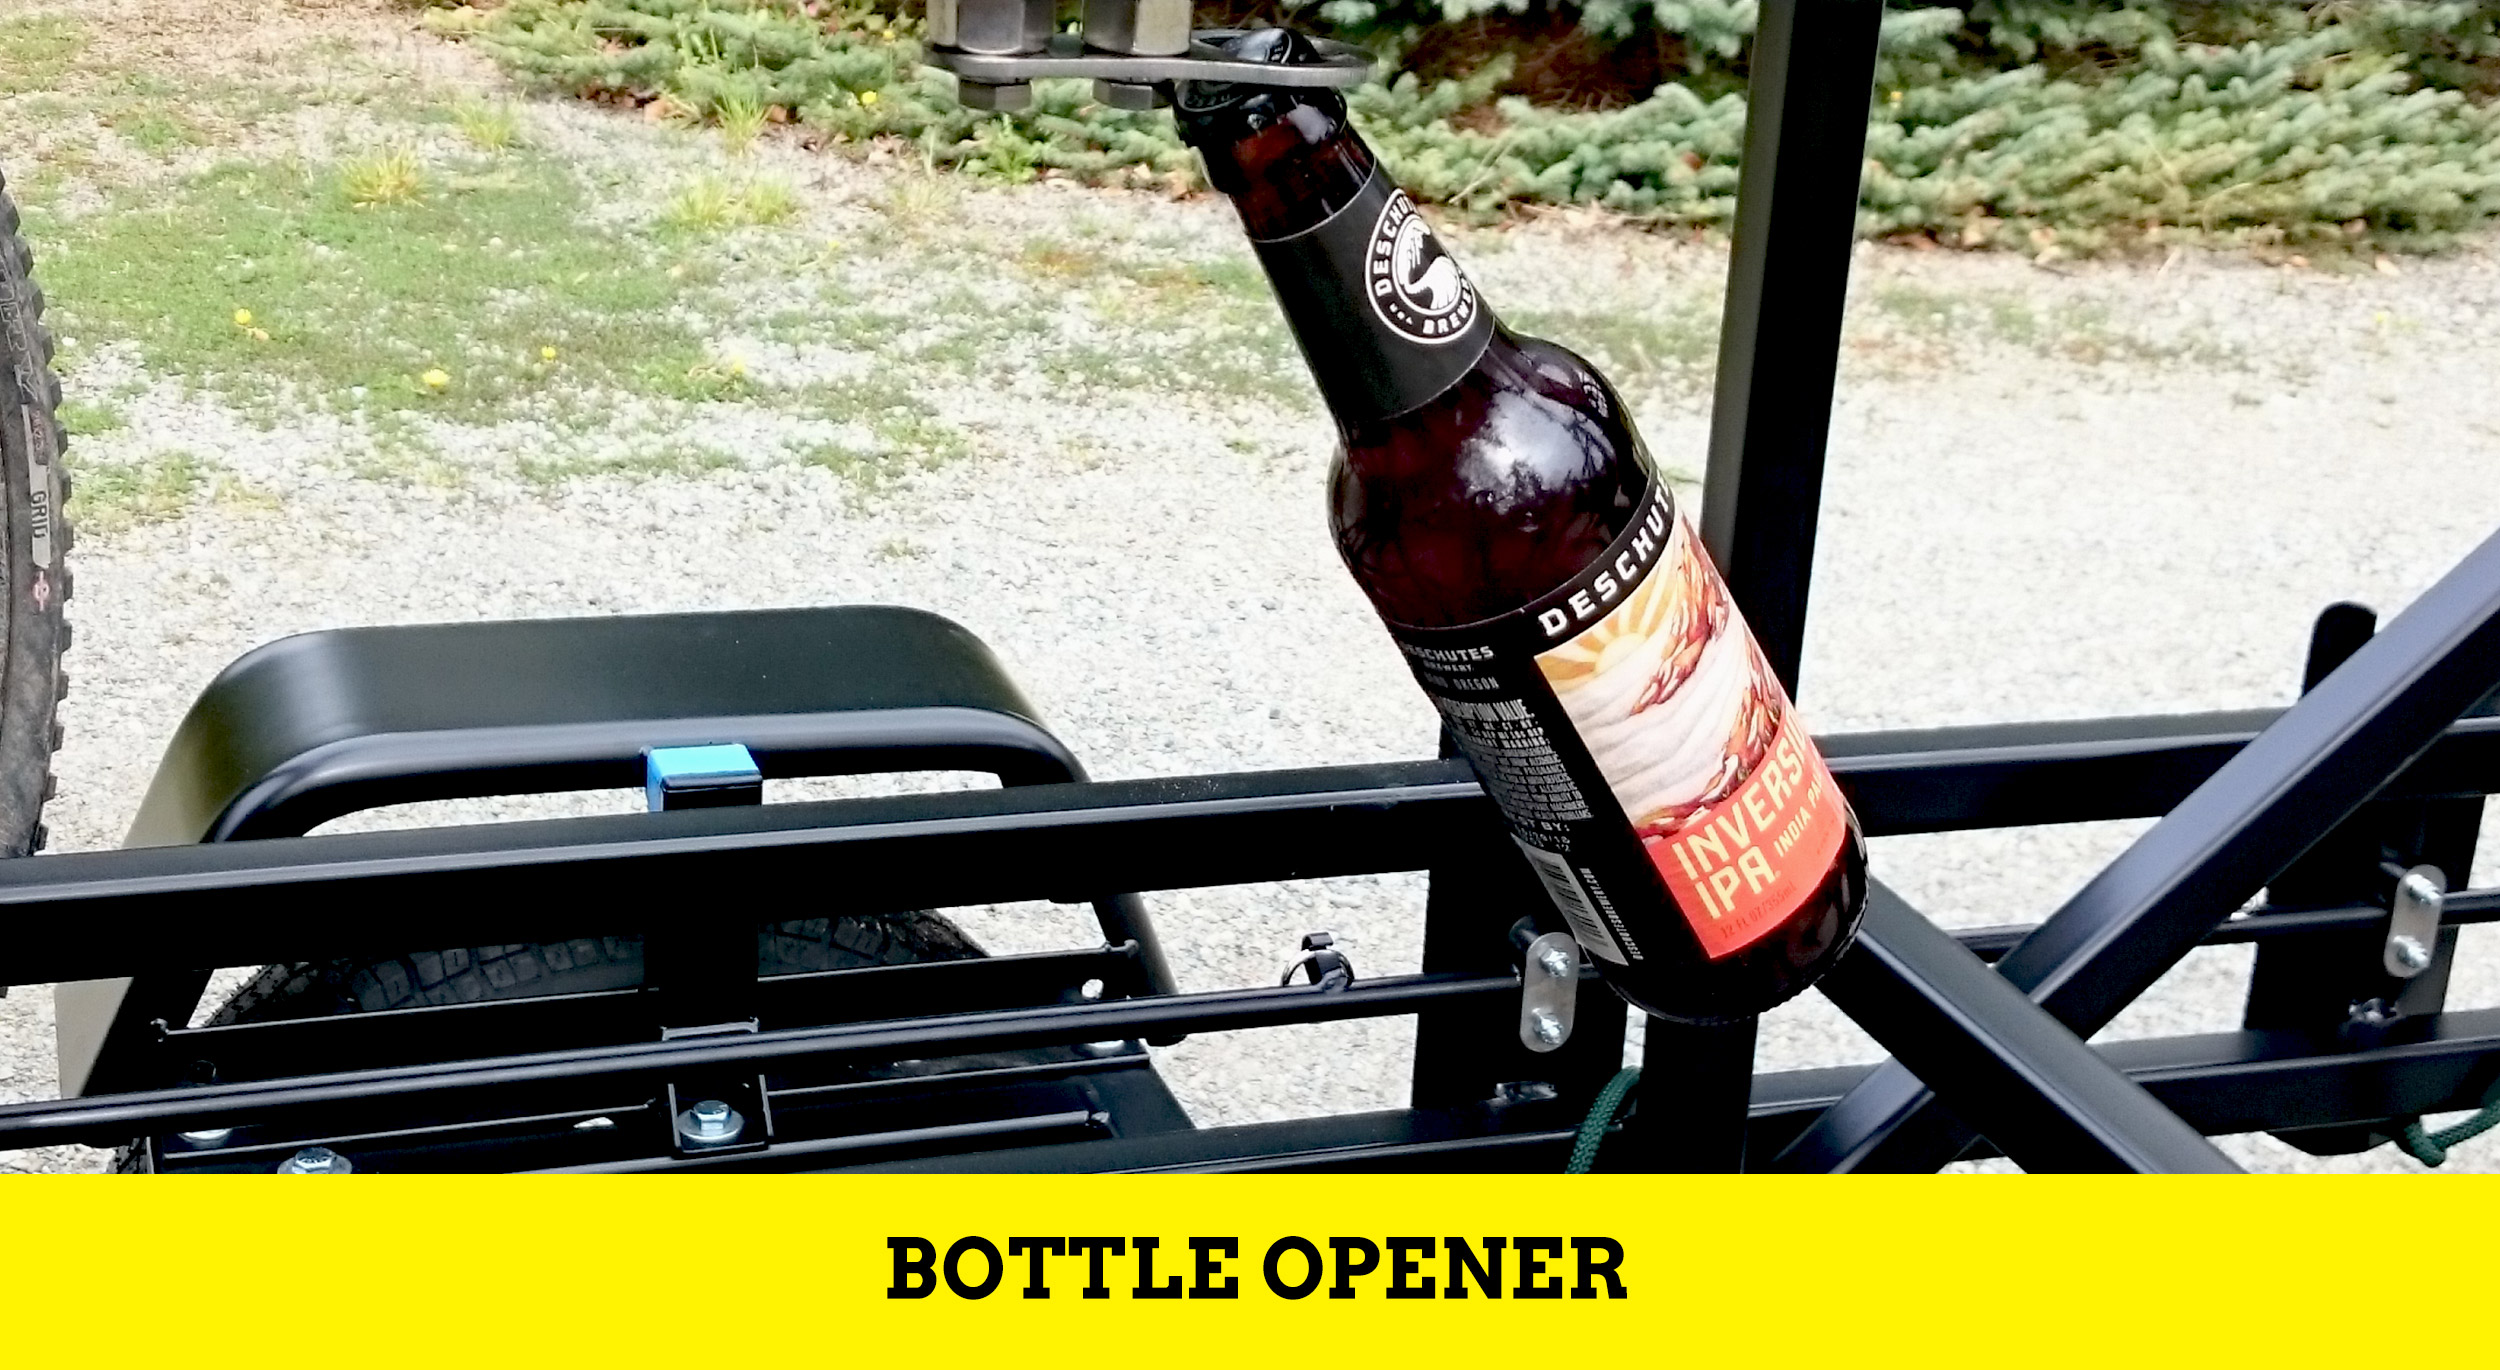 Huckwagons Mountain Bike Shuttle Trailer bottle opener